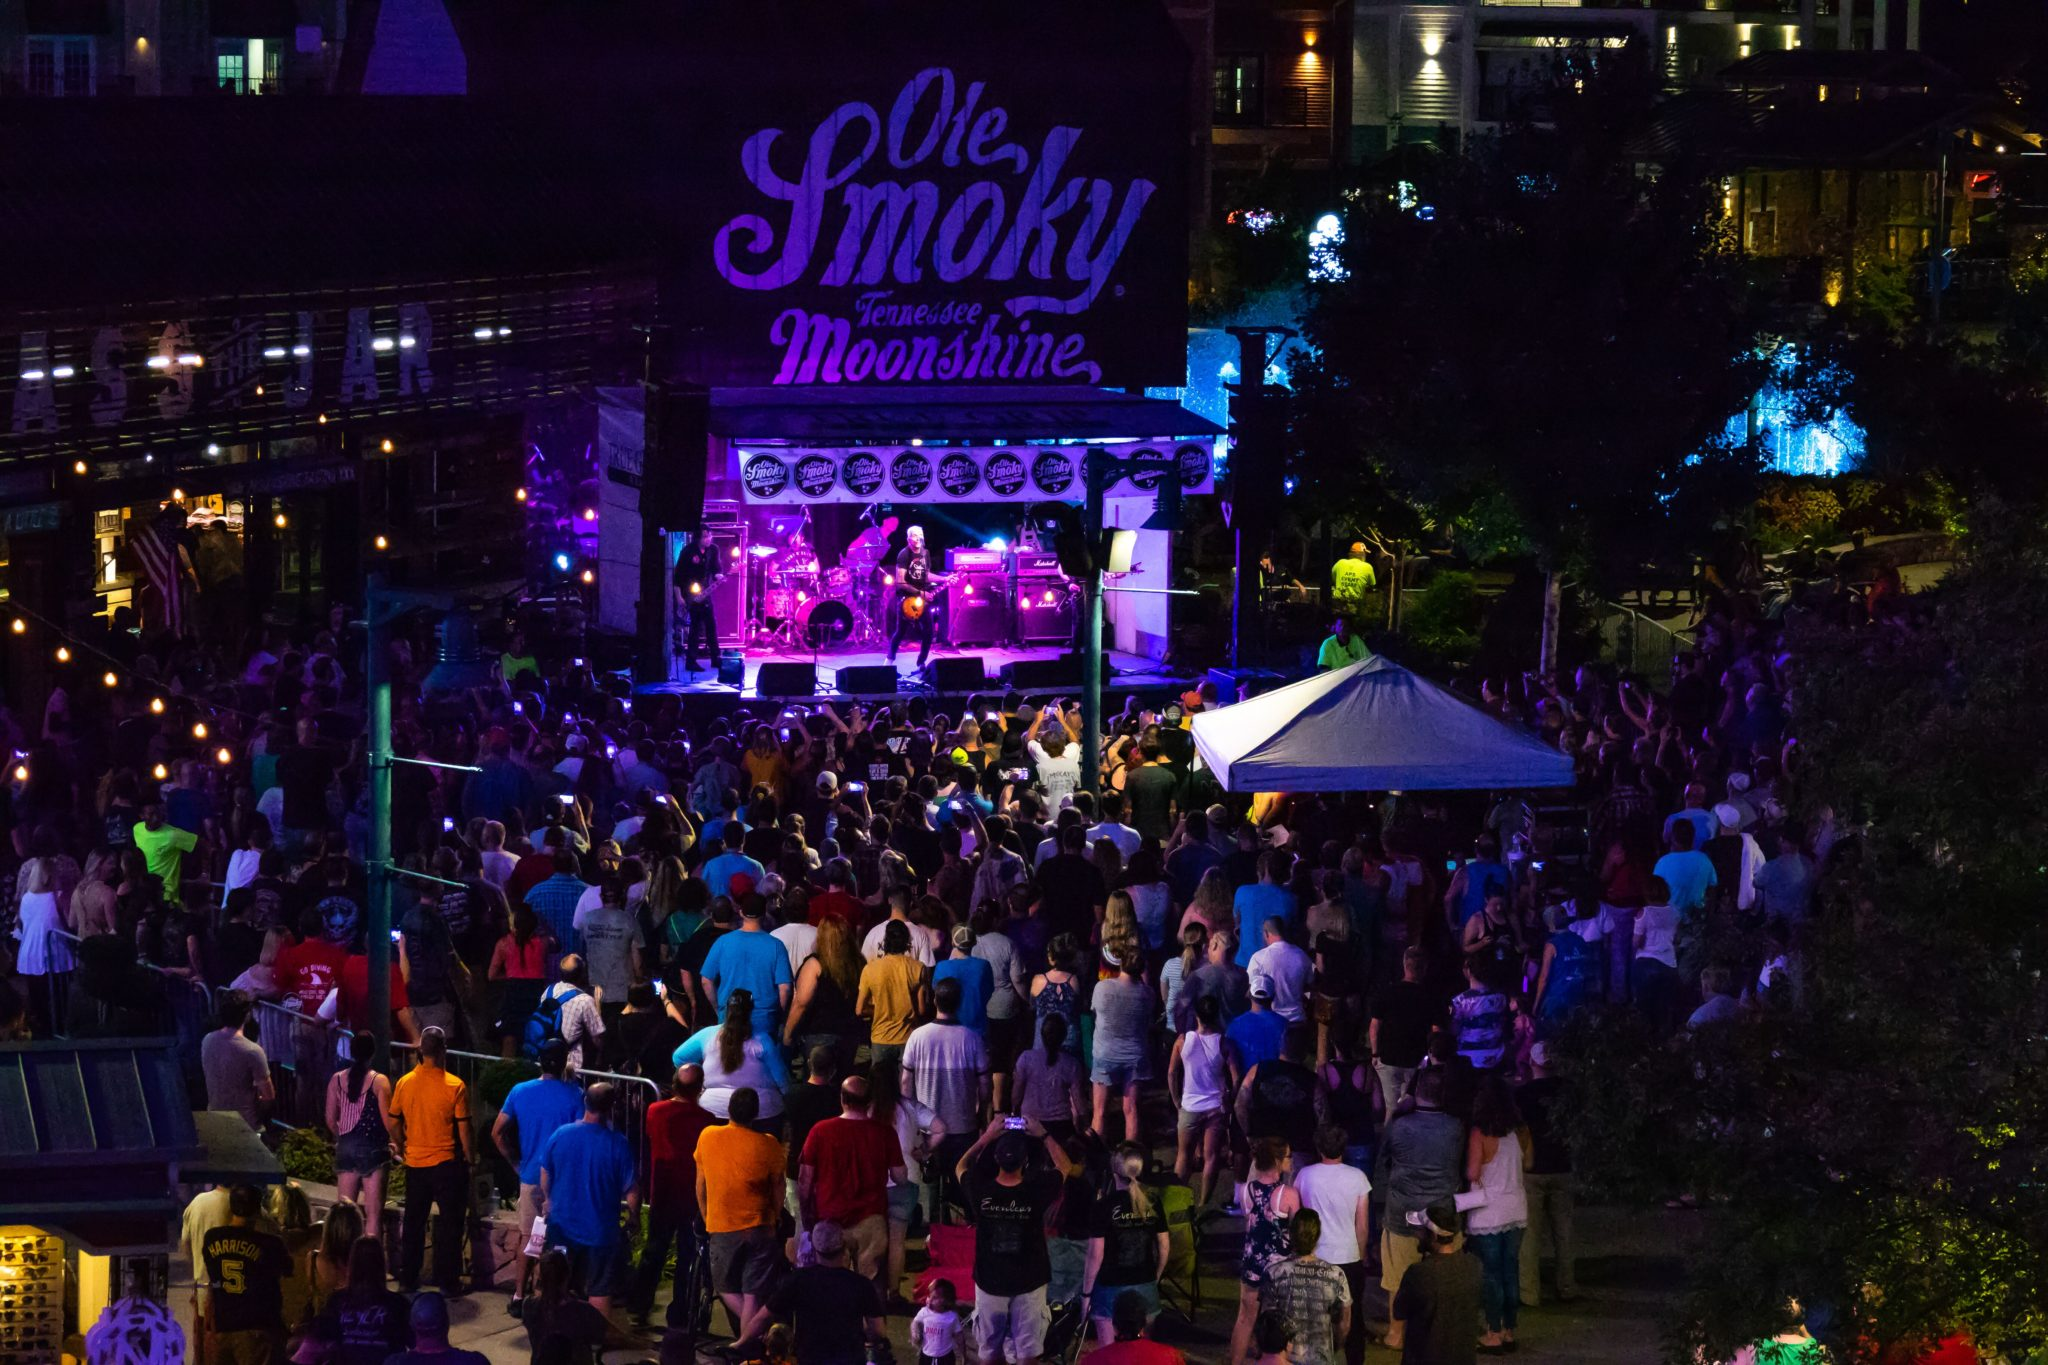 Vertical Horizon band performing on the Ole Smoky stage